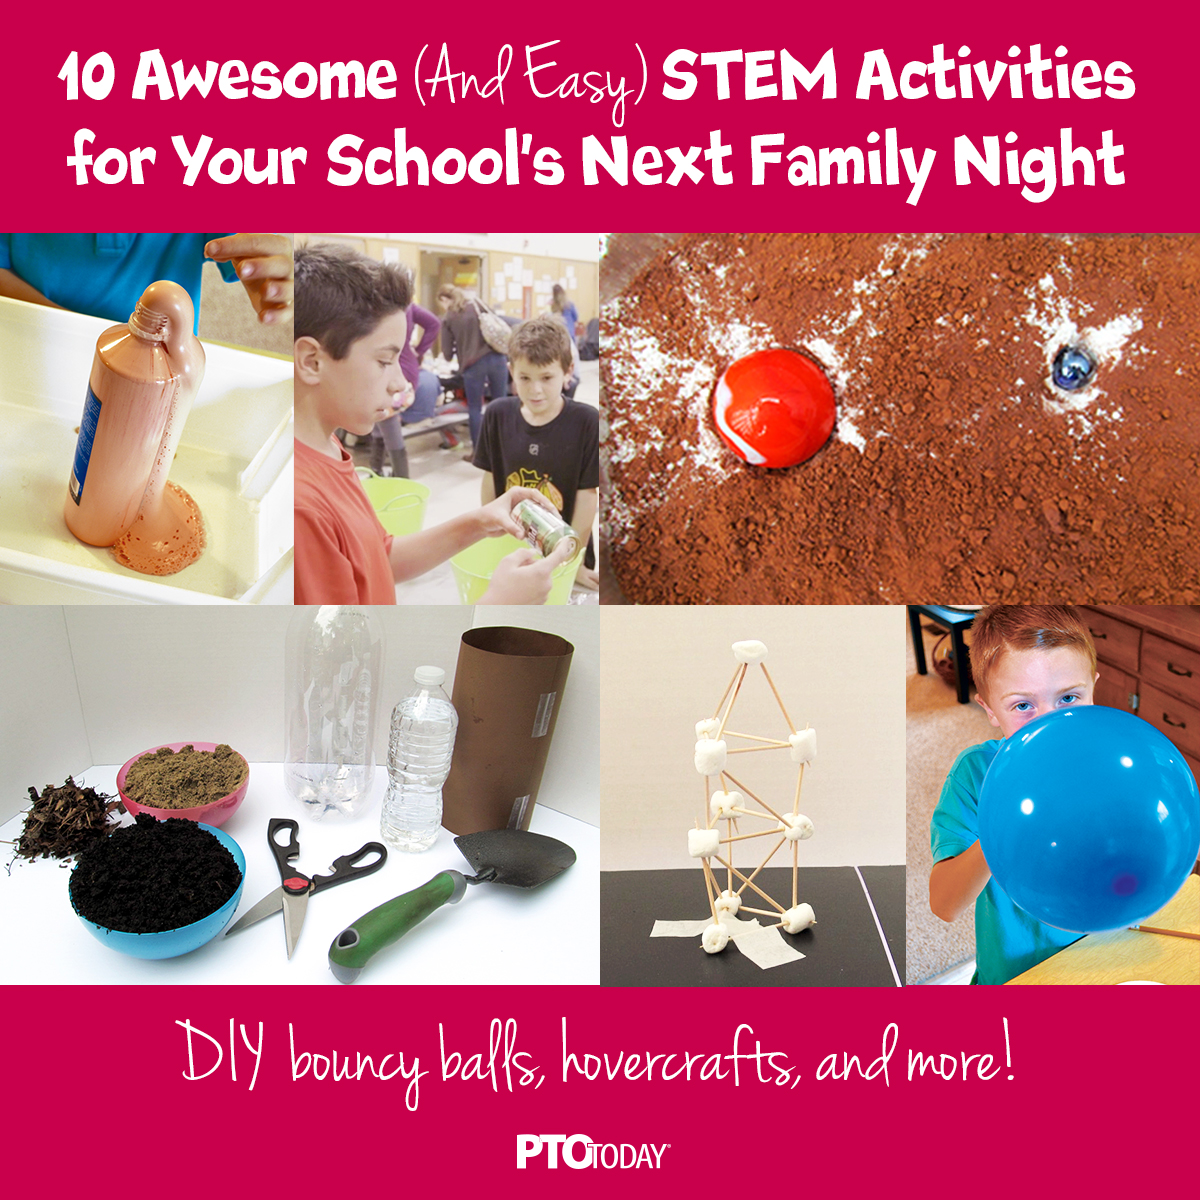 Did someone say virtual family science night? Each of our budget-friendly STEM activities includes a list of the exact supplies you'll need and simple instructions, so you could totally pull it off from home. Check out the 10 most popular activities here > http://ow.ly/II2L50AorJApic.twitter.com/j3kAUlSZLv